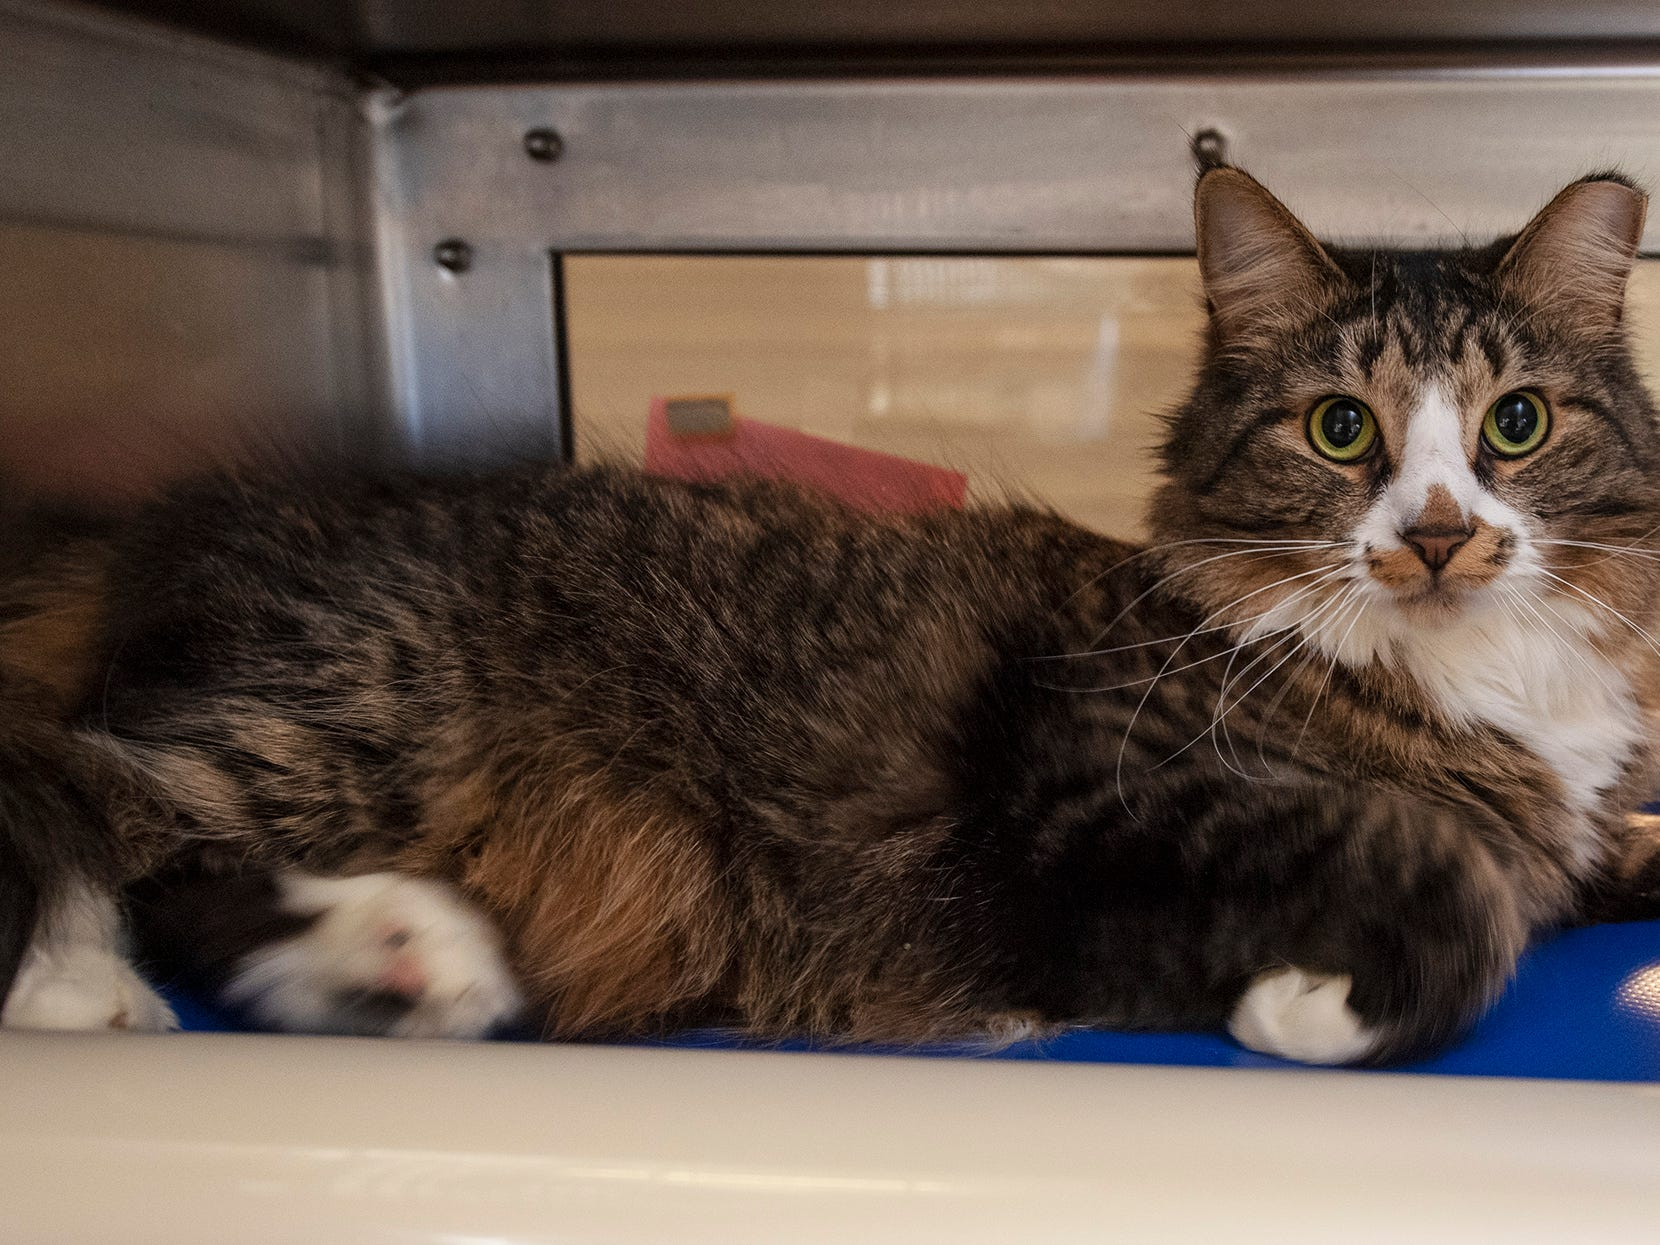 My name is Sheba and I was brought into the York County SPCA because my owner is sick and can no longer care for me. I'm shy at first, but will warm up to my humans and be very cuddly.